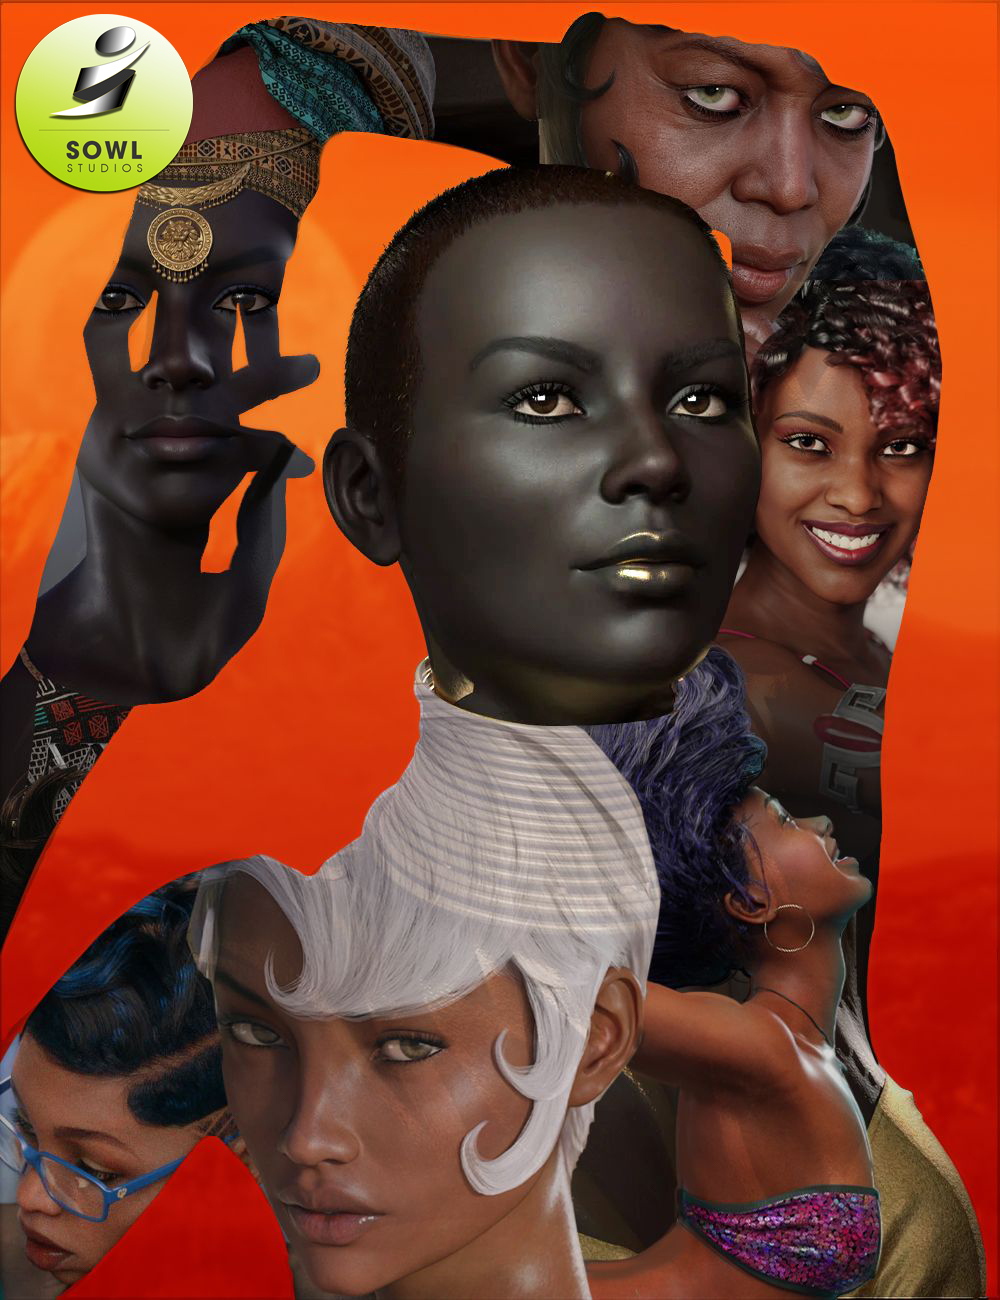 Celebrate Black Women Sowl Studios Picks by: , 3D Models by Daz 3D